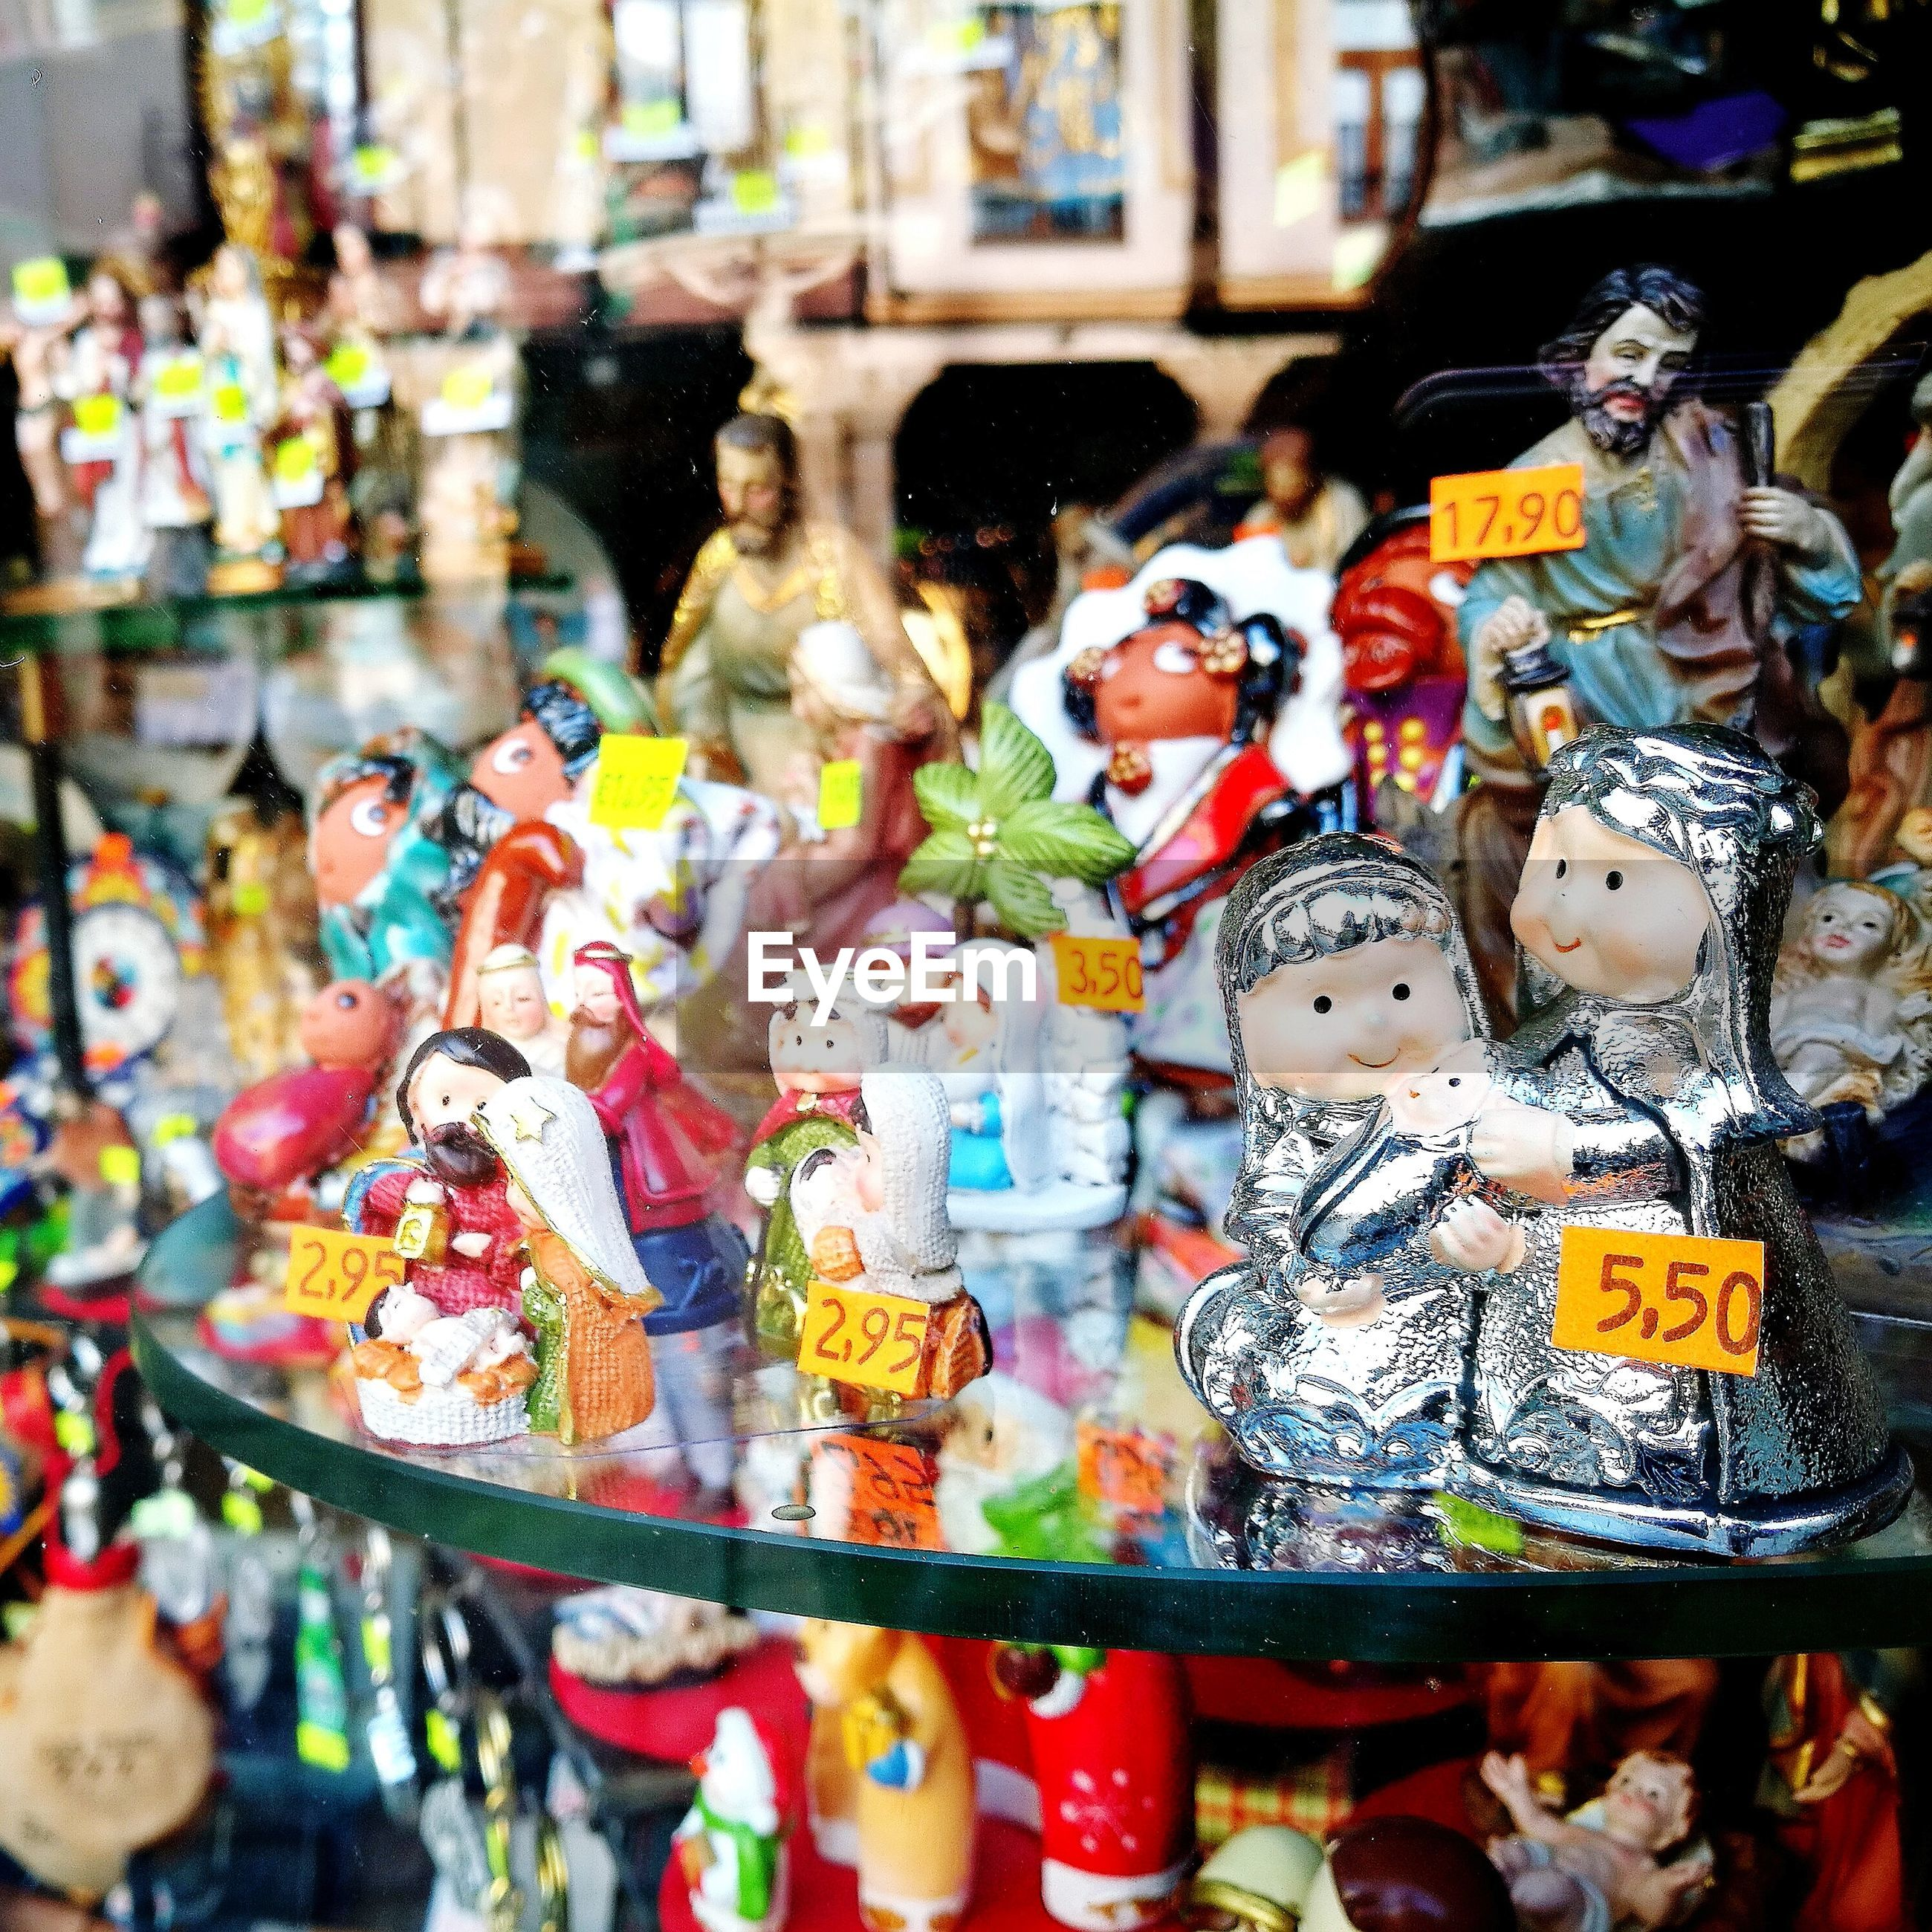 Various decorations for sale in store